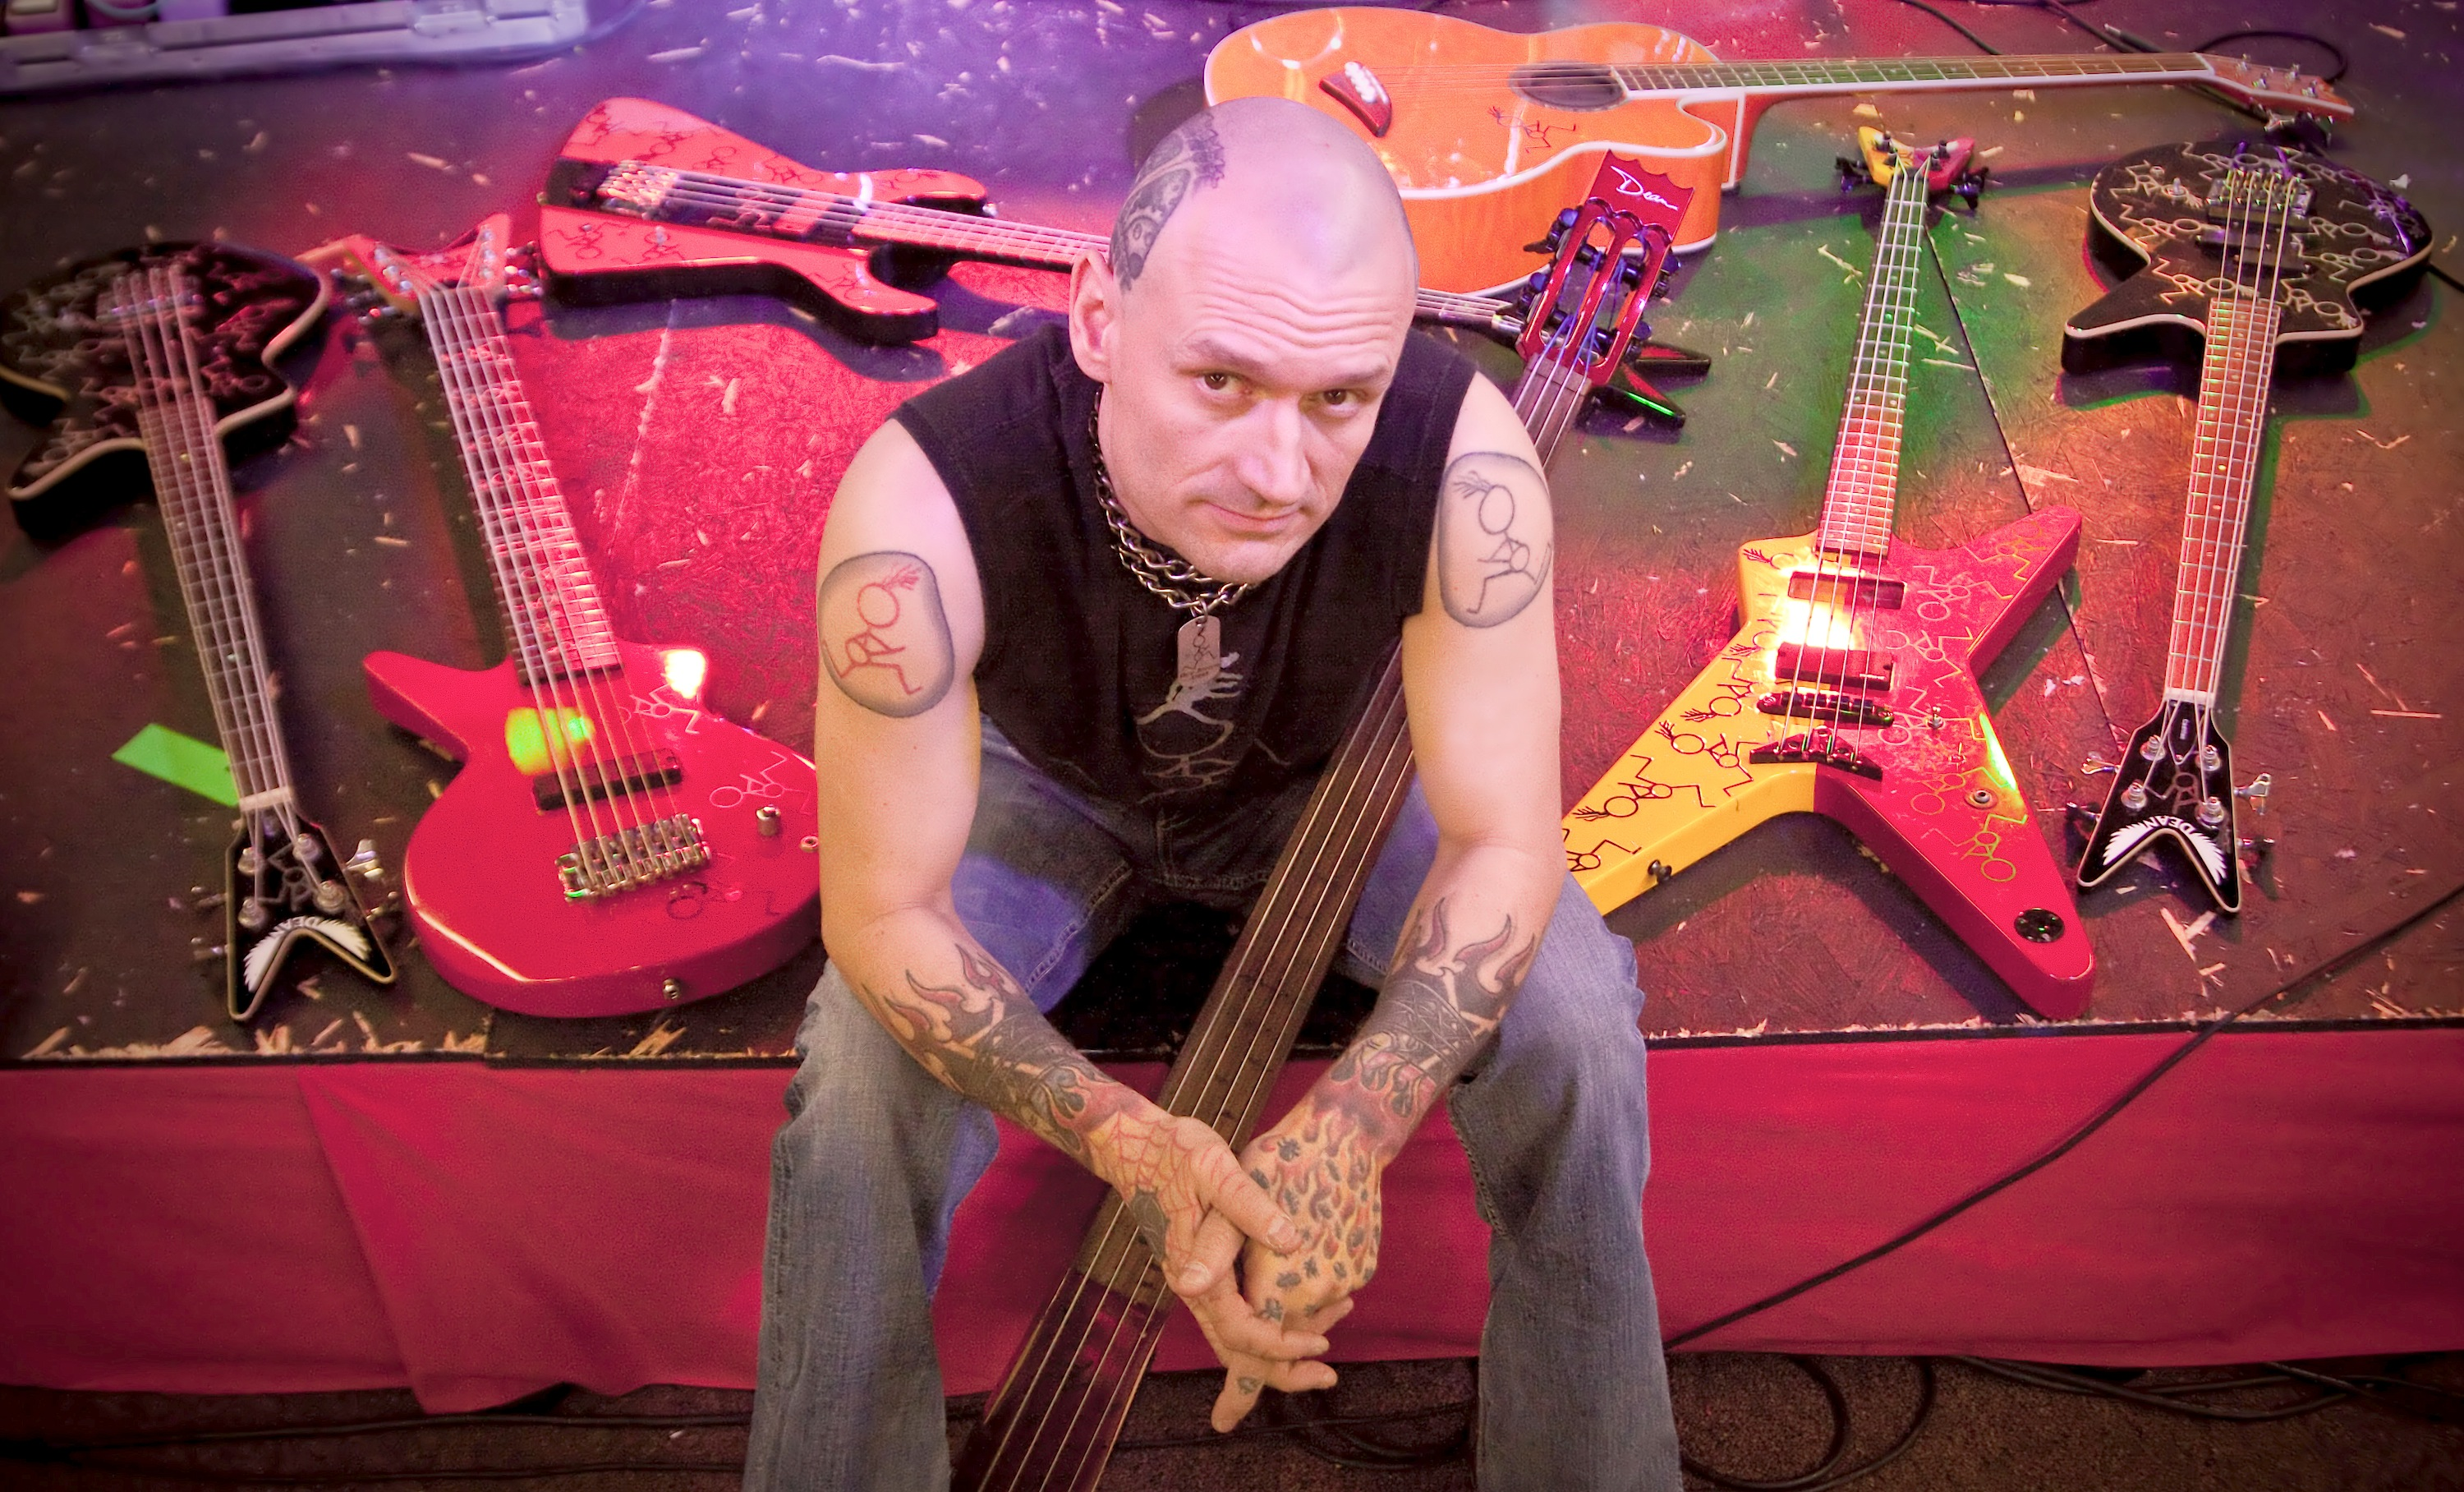 Master Bassist Rev Jones Gives Us Insight On The Making Of His New Solo Album And What It's Like To Be A Rocker Today!